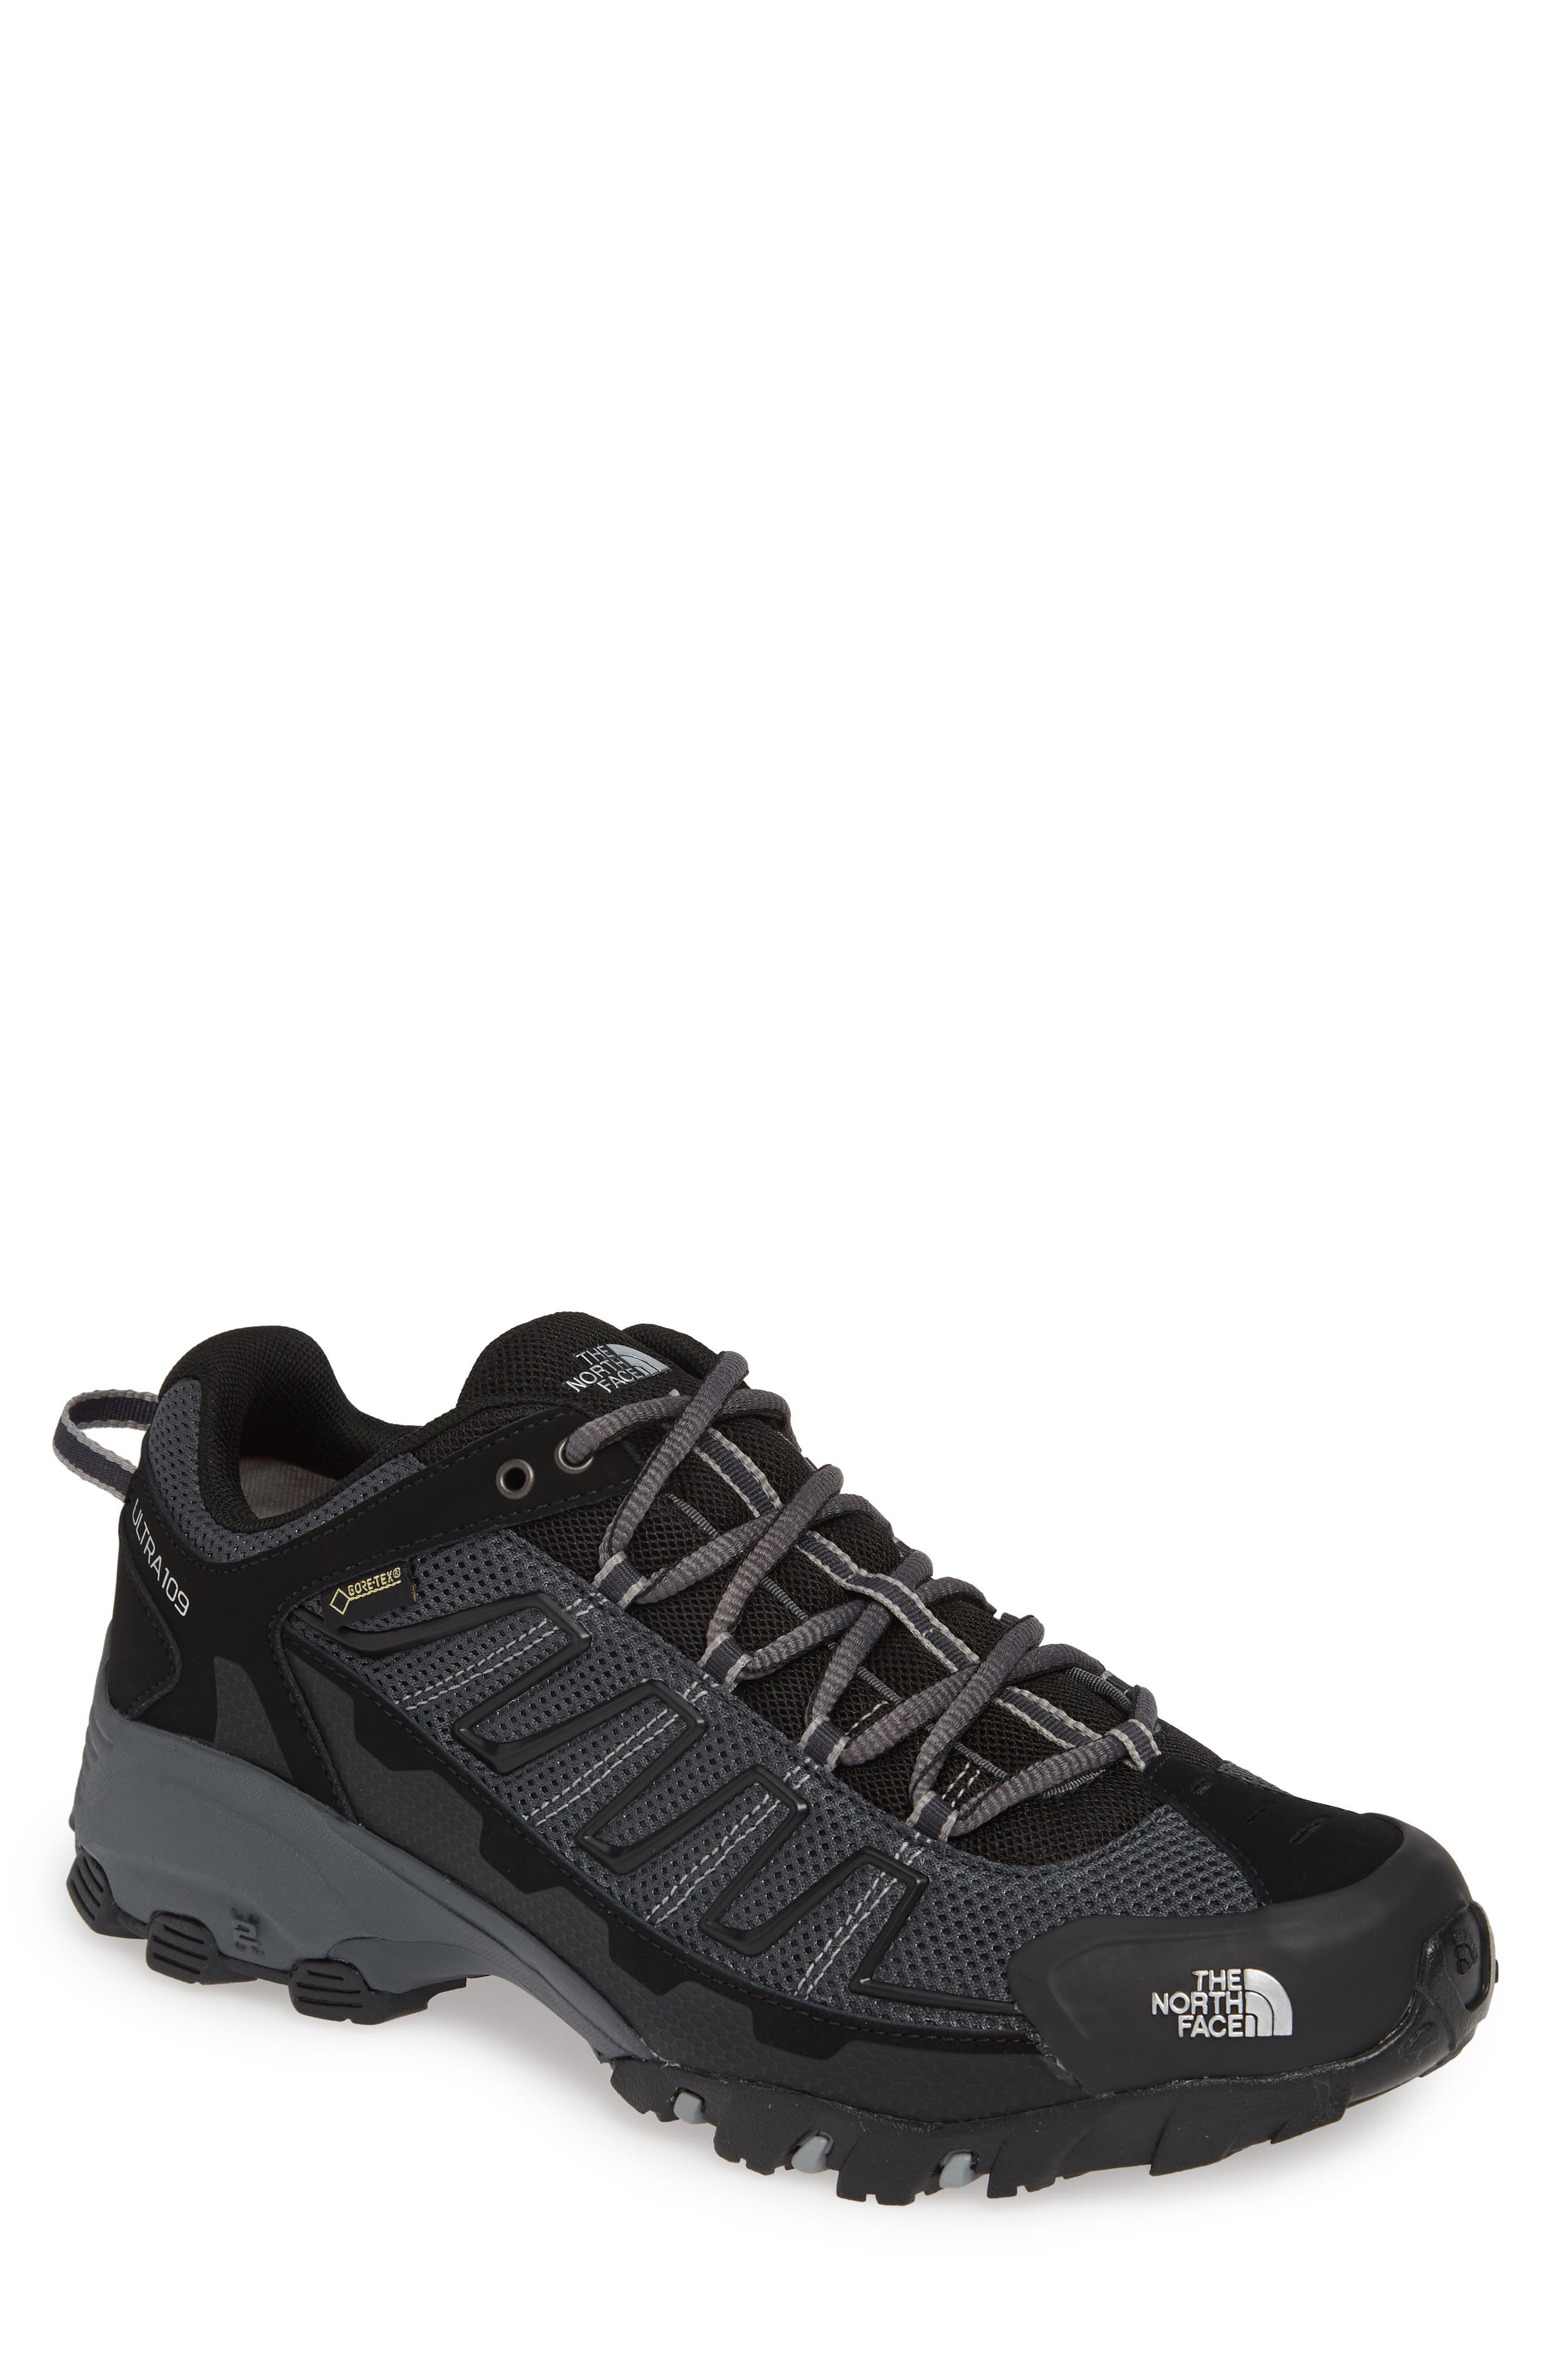 THE NORTH FACE, 'Ultra 109 GTX' Waterproof Running Shoe, Main thumbnail 1, color, BLACK/ GREY